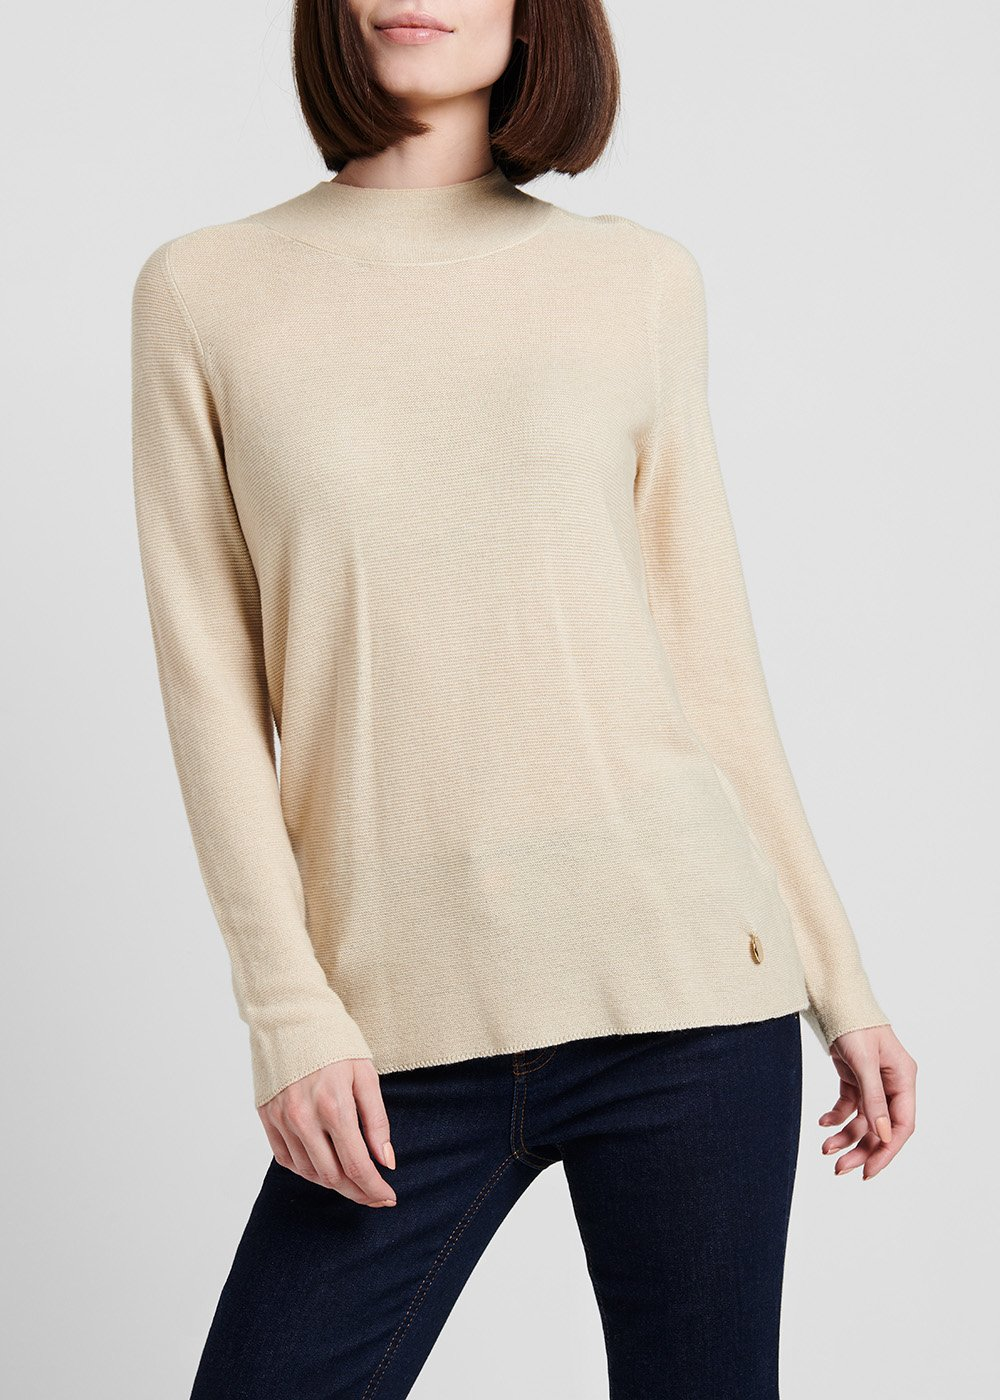 Narrow-ribbed round-neck sweater - Light Beige - Woman